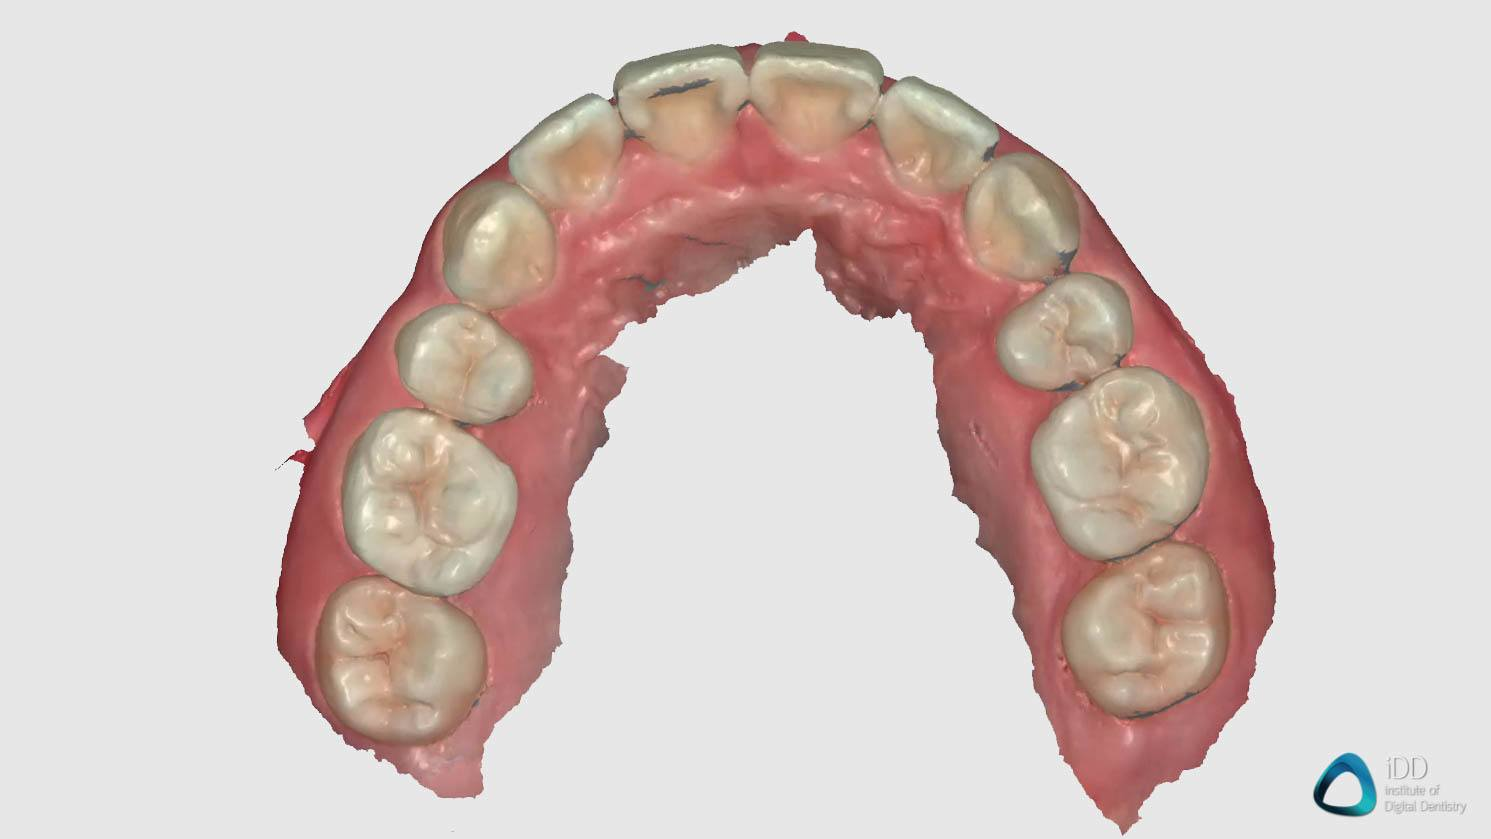 full arch scan runyes 3DS IOS institute of digital dentistry (2)